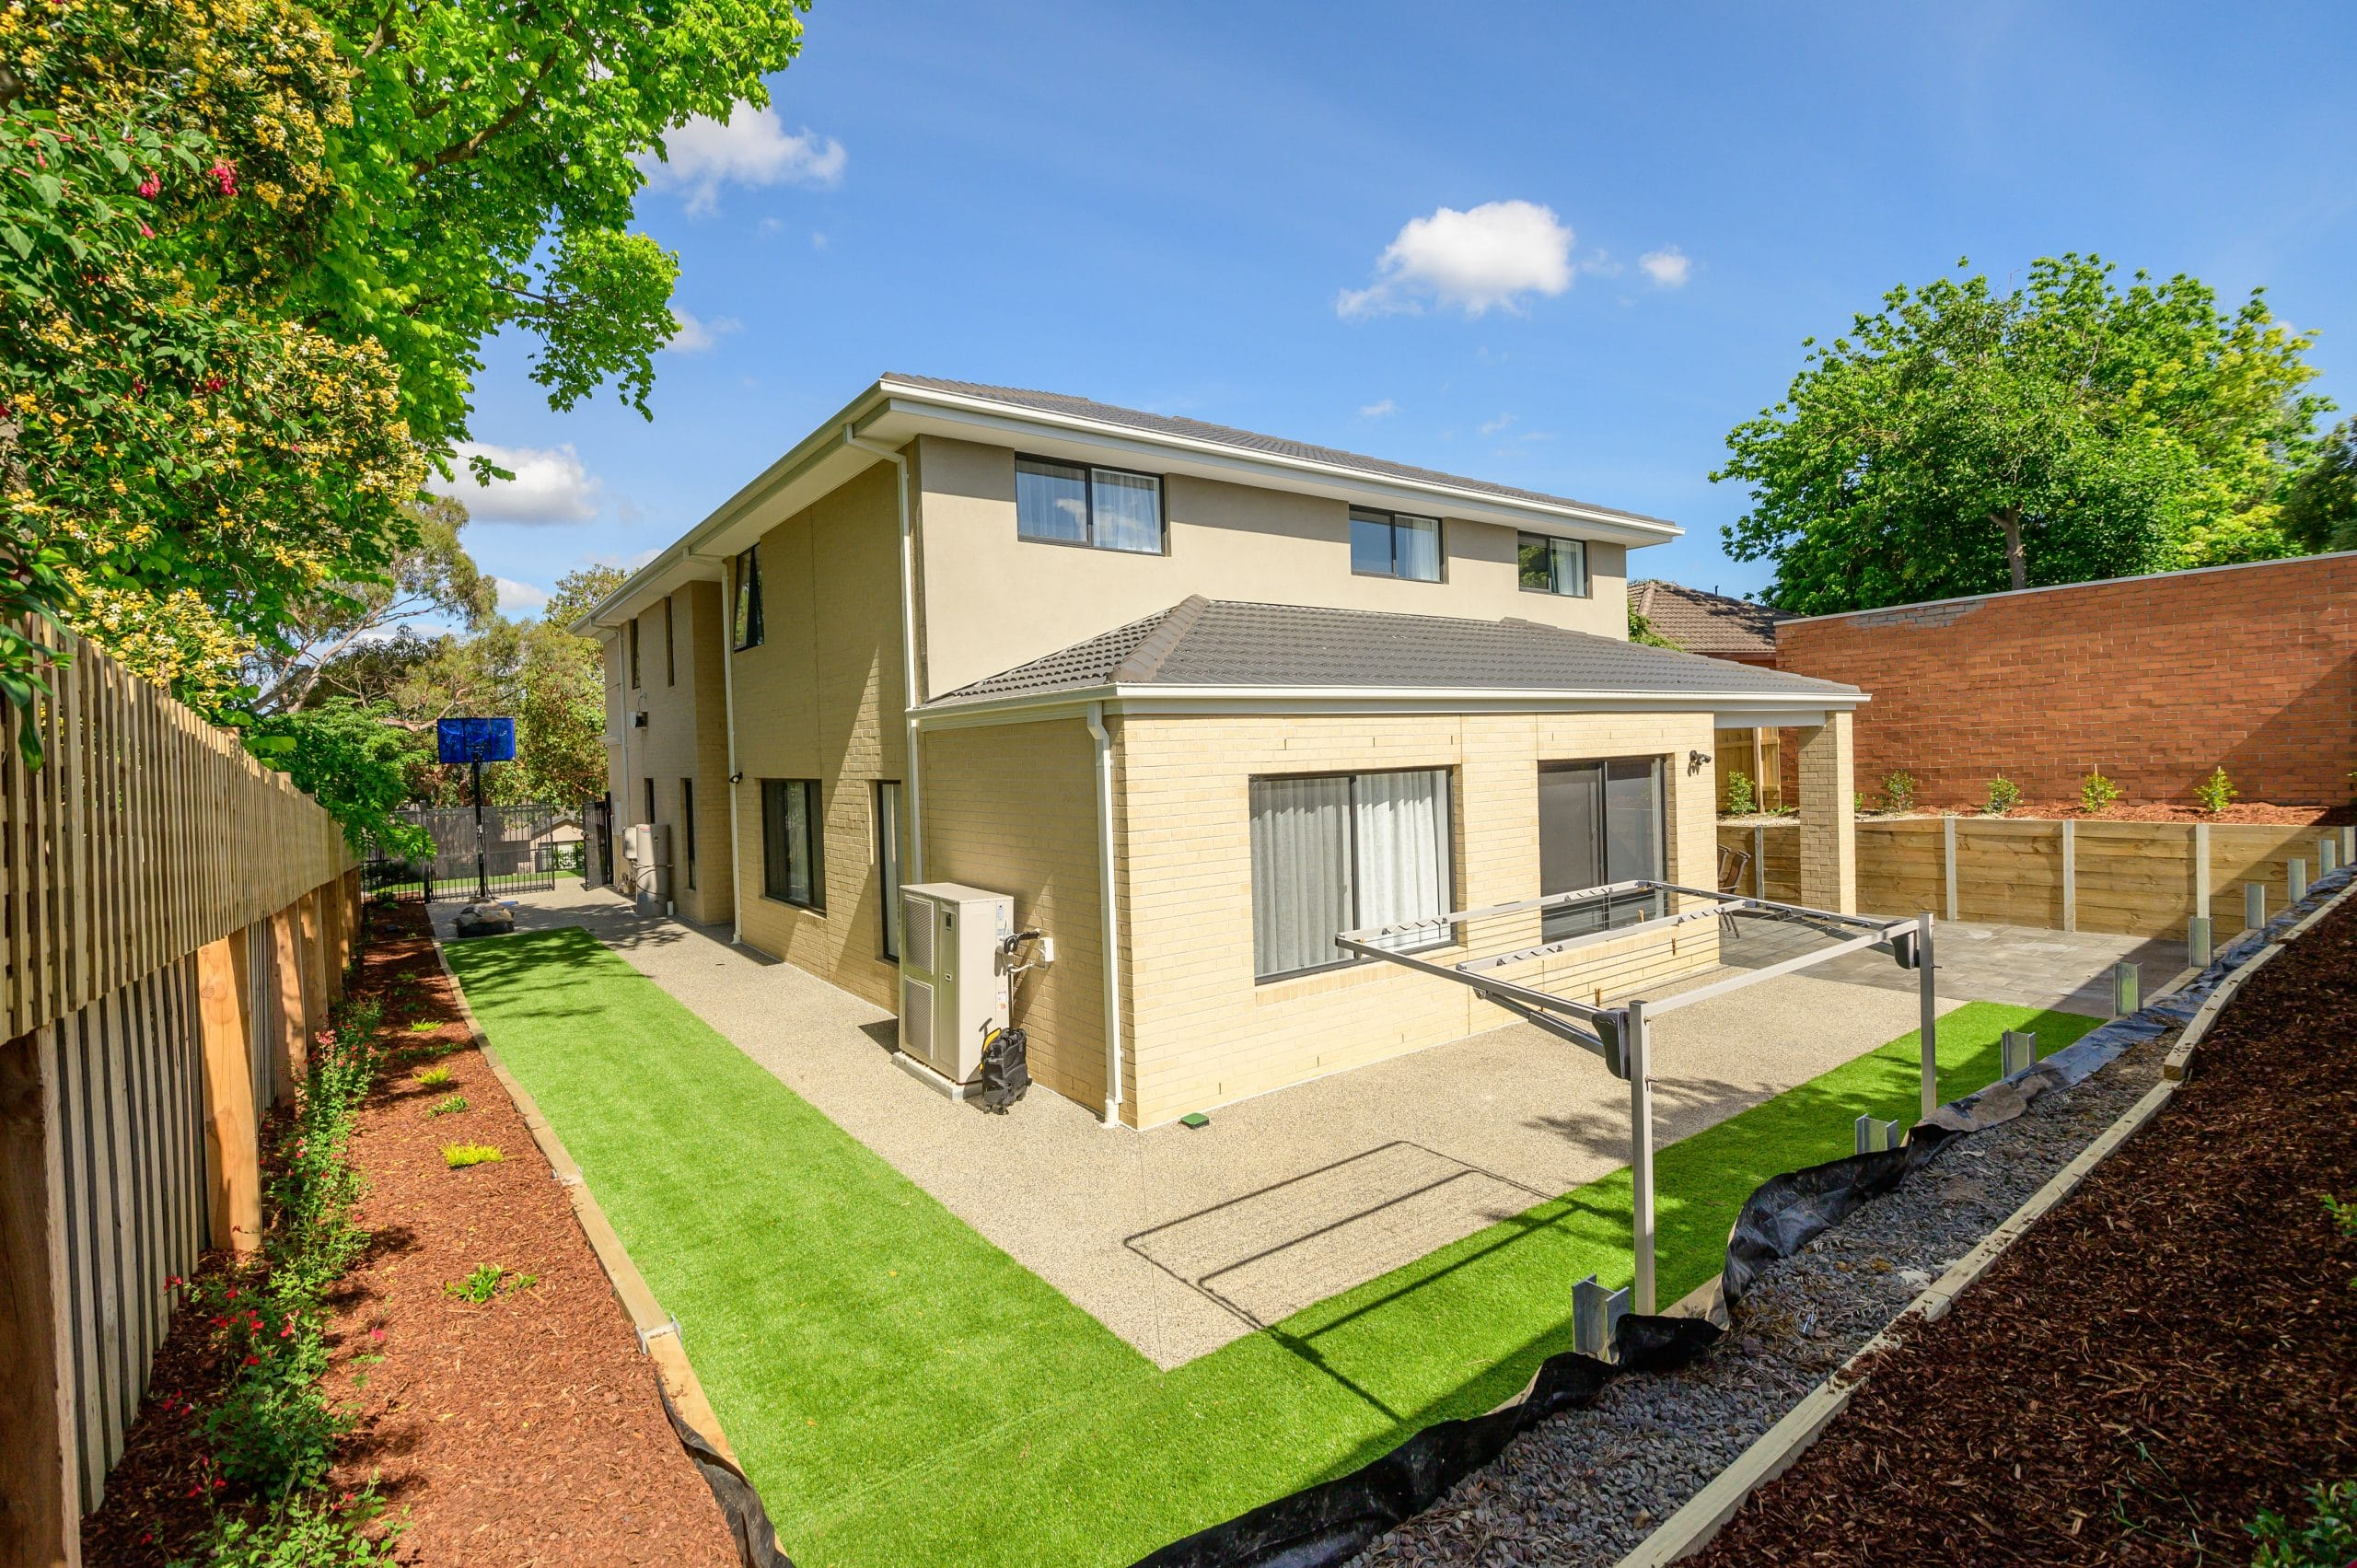 L259 - Doncaster East - Corner point of view of backyard